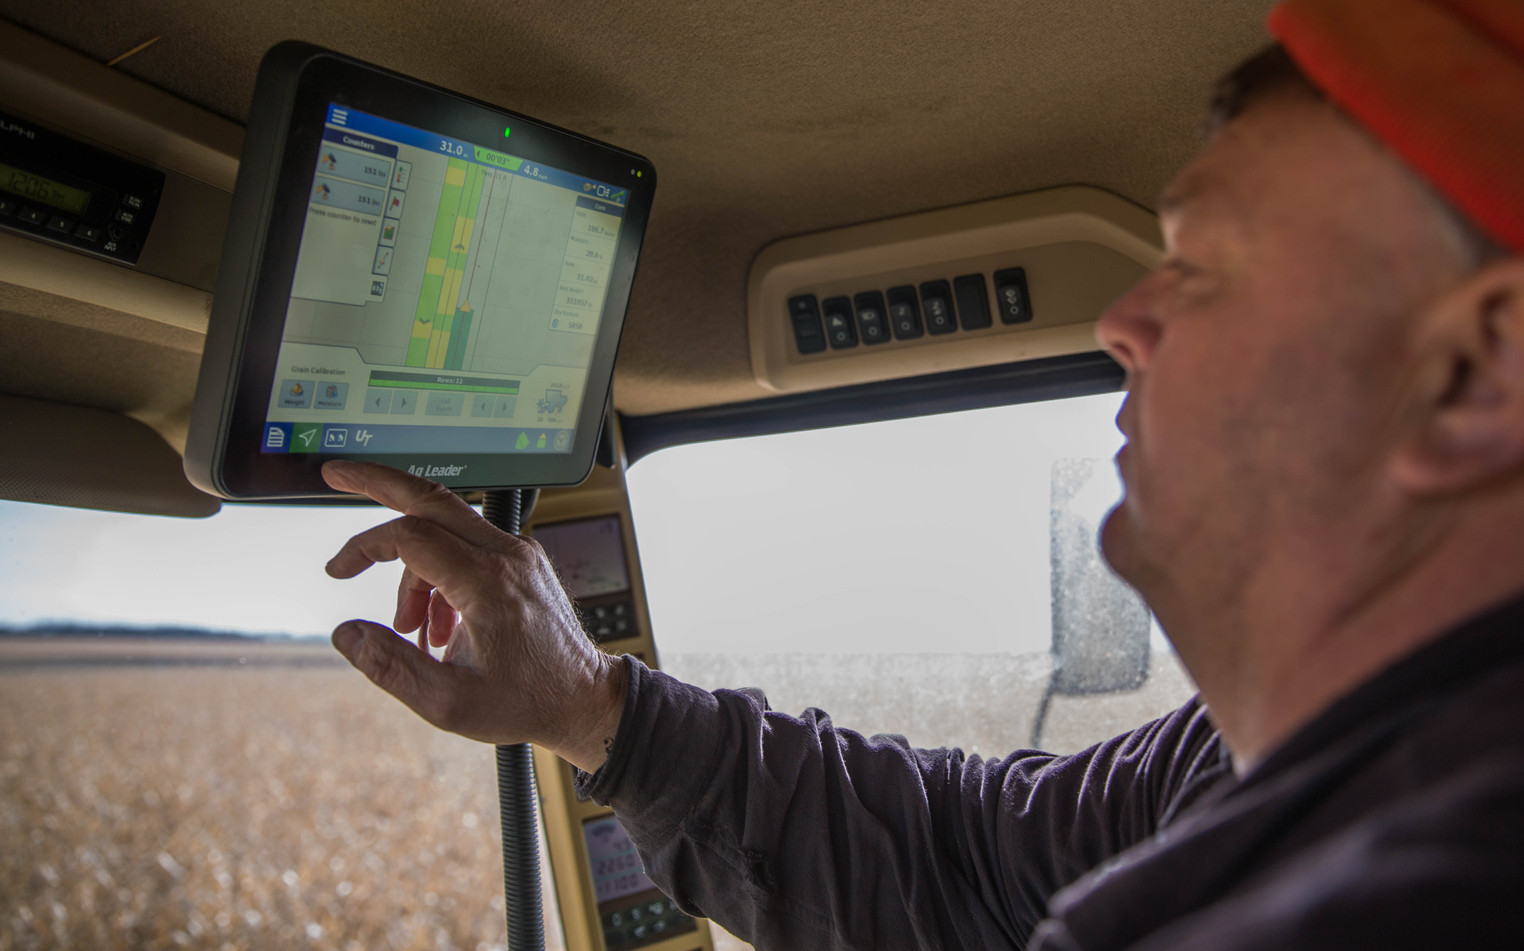 Jim Thyen checks the GPS and readings in the combine during dry corn harvest on Tuesday, Oct. 31 in Waverly. The combine can self-drive, measure the number of bushels being collected per acre, show parts of the fields that are more or less productive and more. Farming technology continually improves, making harvest more time-efficient. ©2017 Grace Ramey